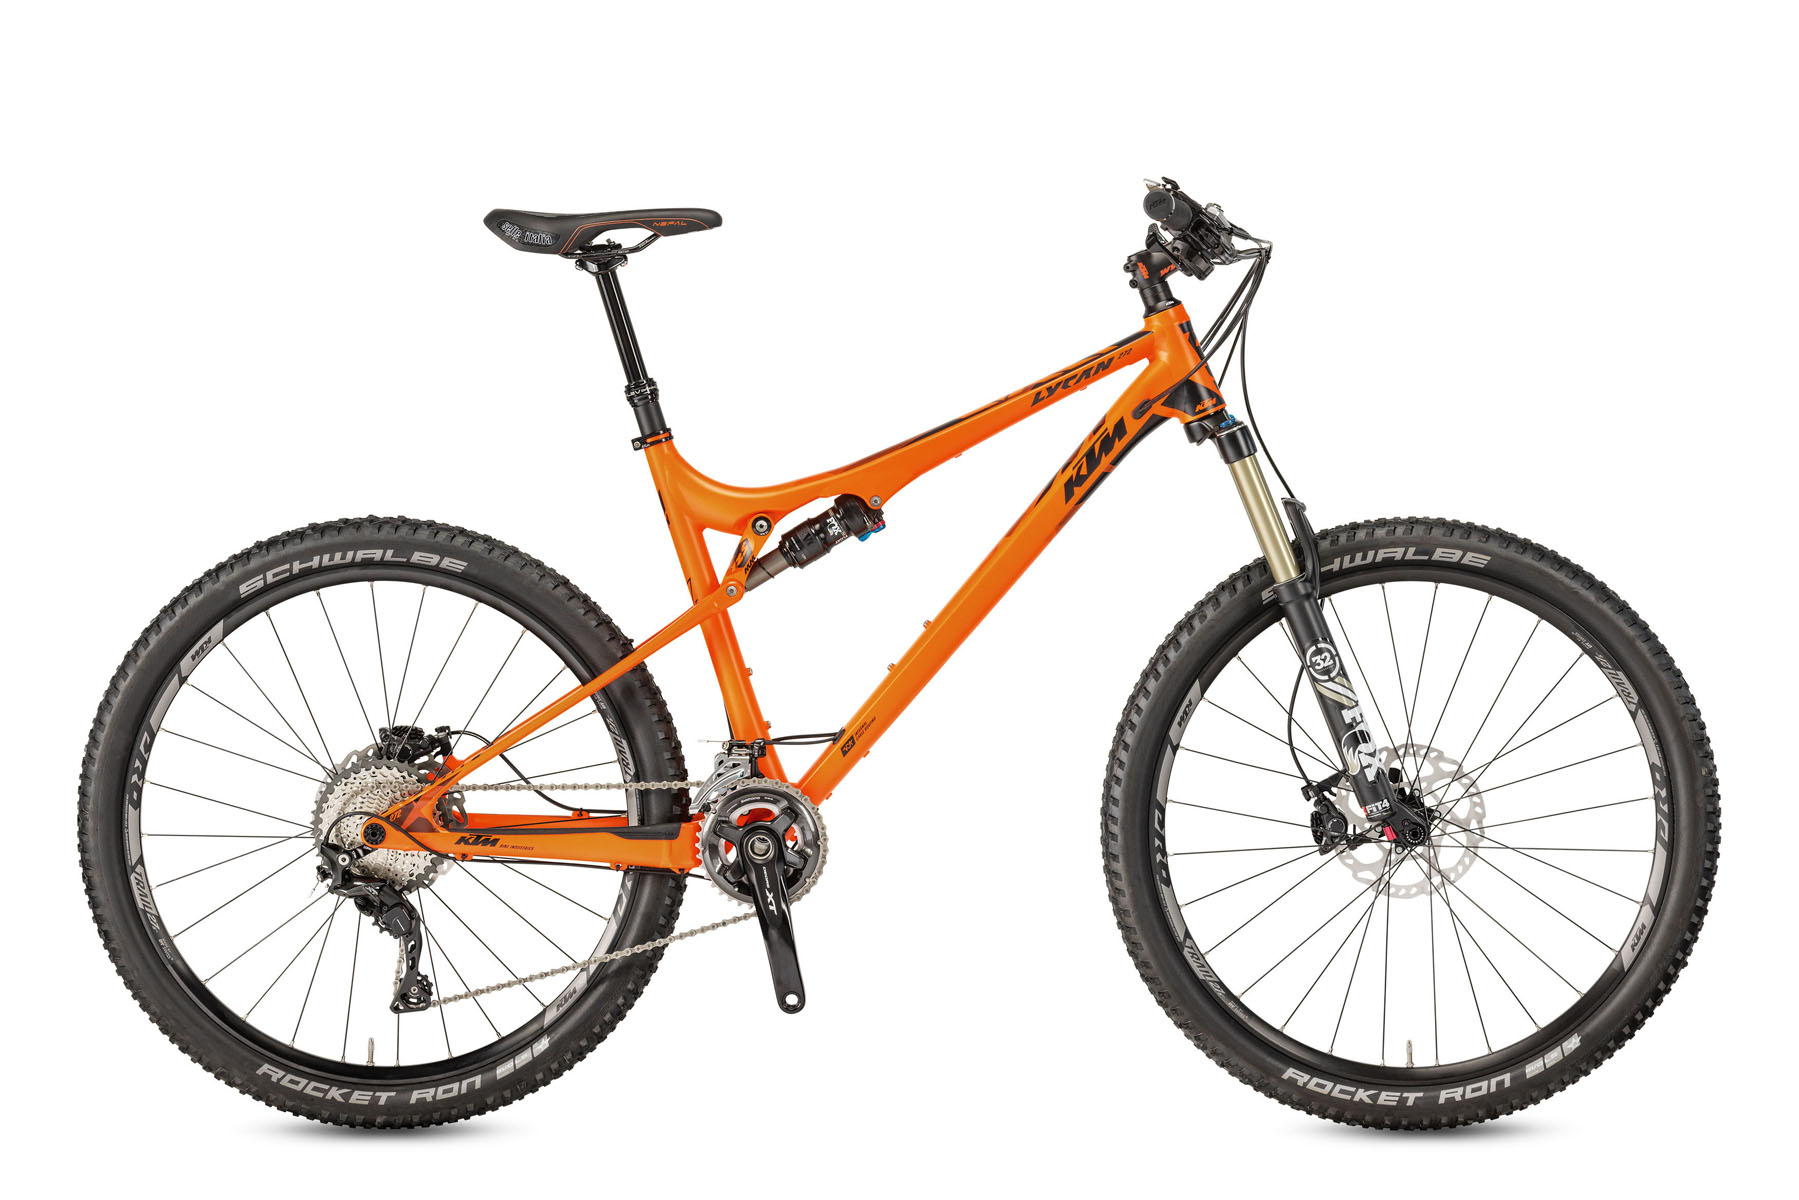 Bicicleta KTM LYCAN 272    22s/33s XT Full Suspension 2017